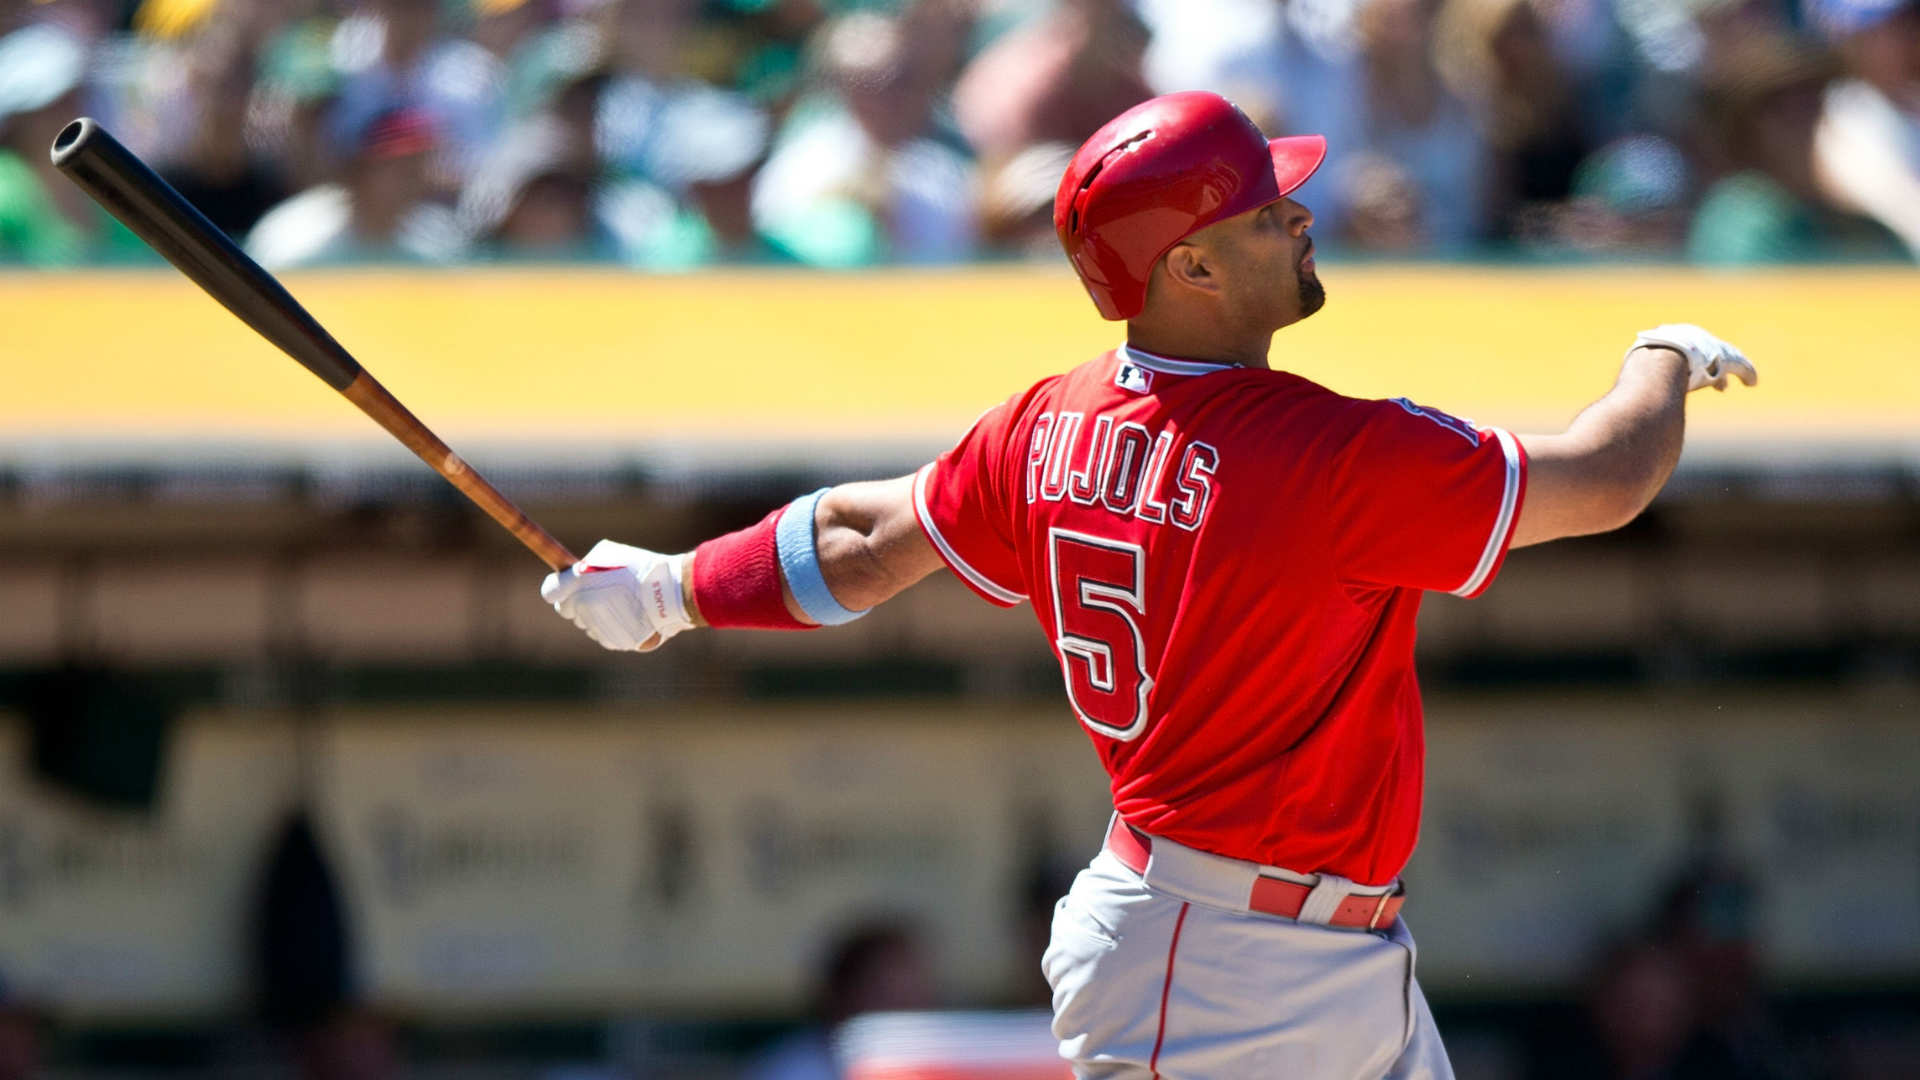 Albert-Pujols-070815-USNews-Getty-FTR